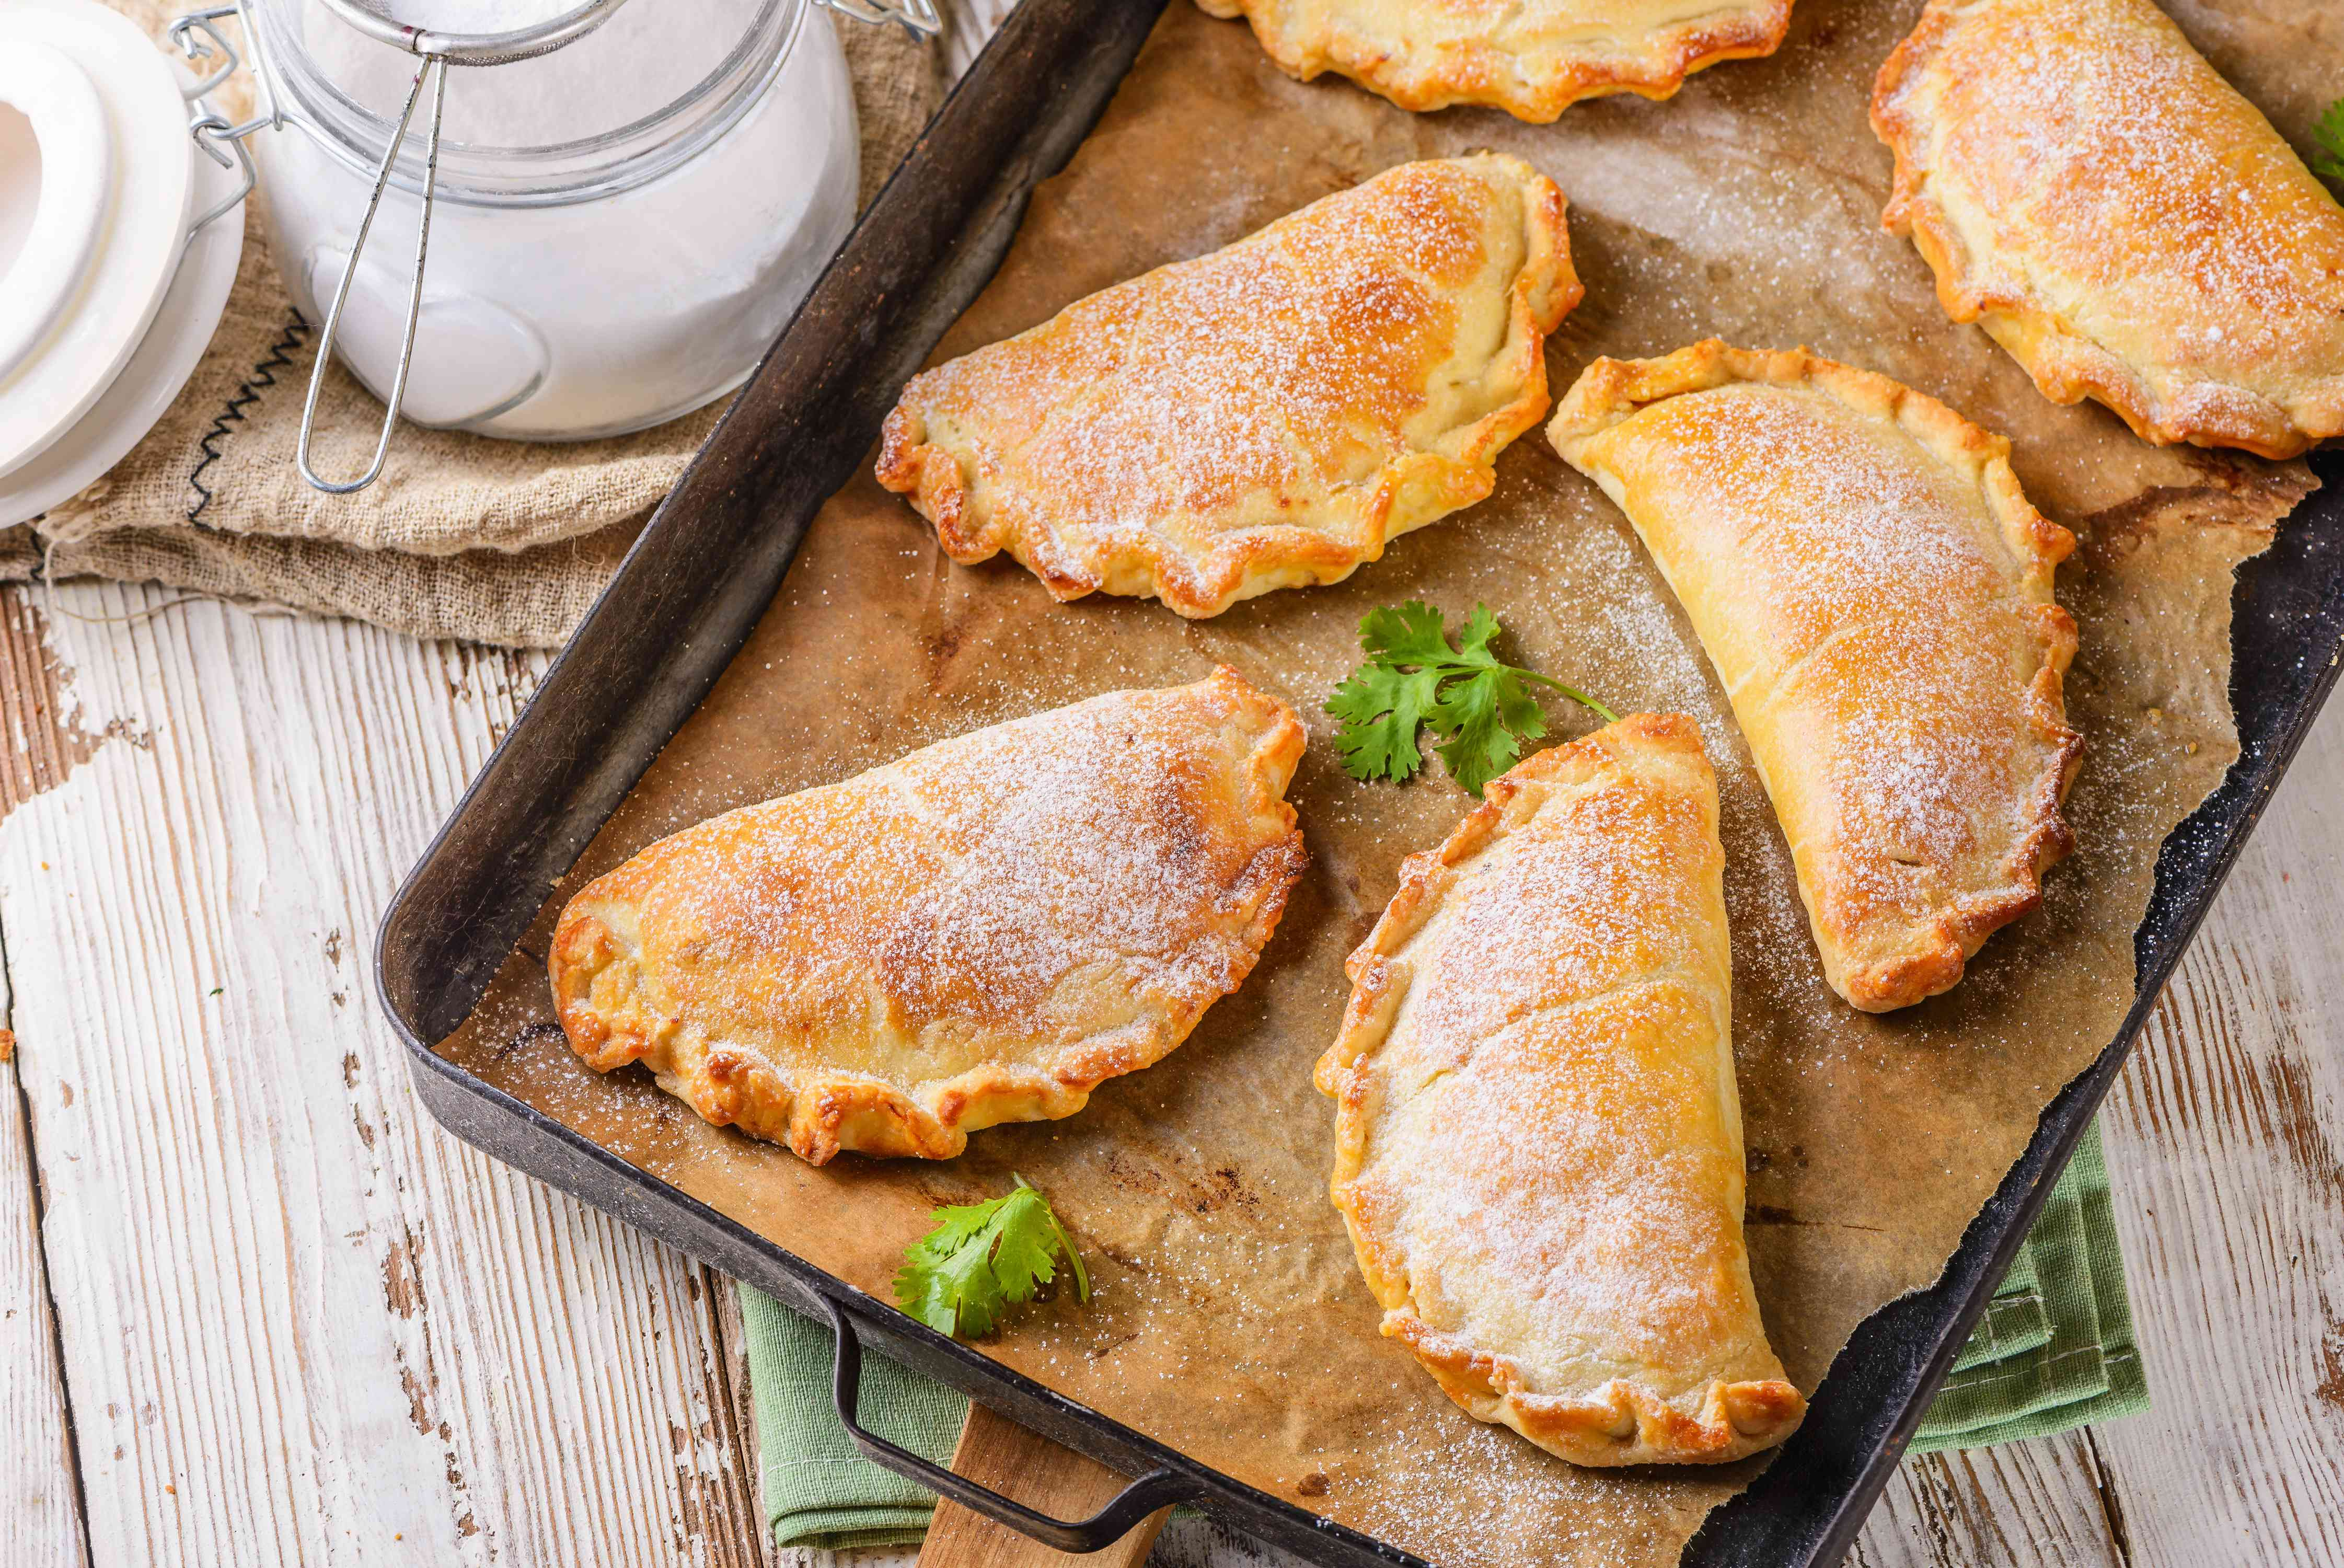 Baked empanadas dusted with powdered sugar